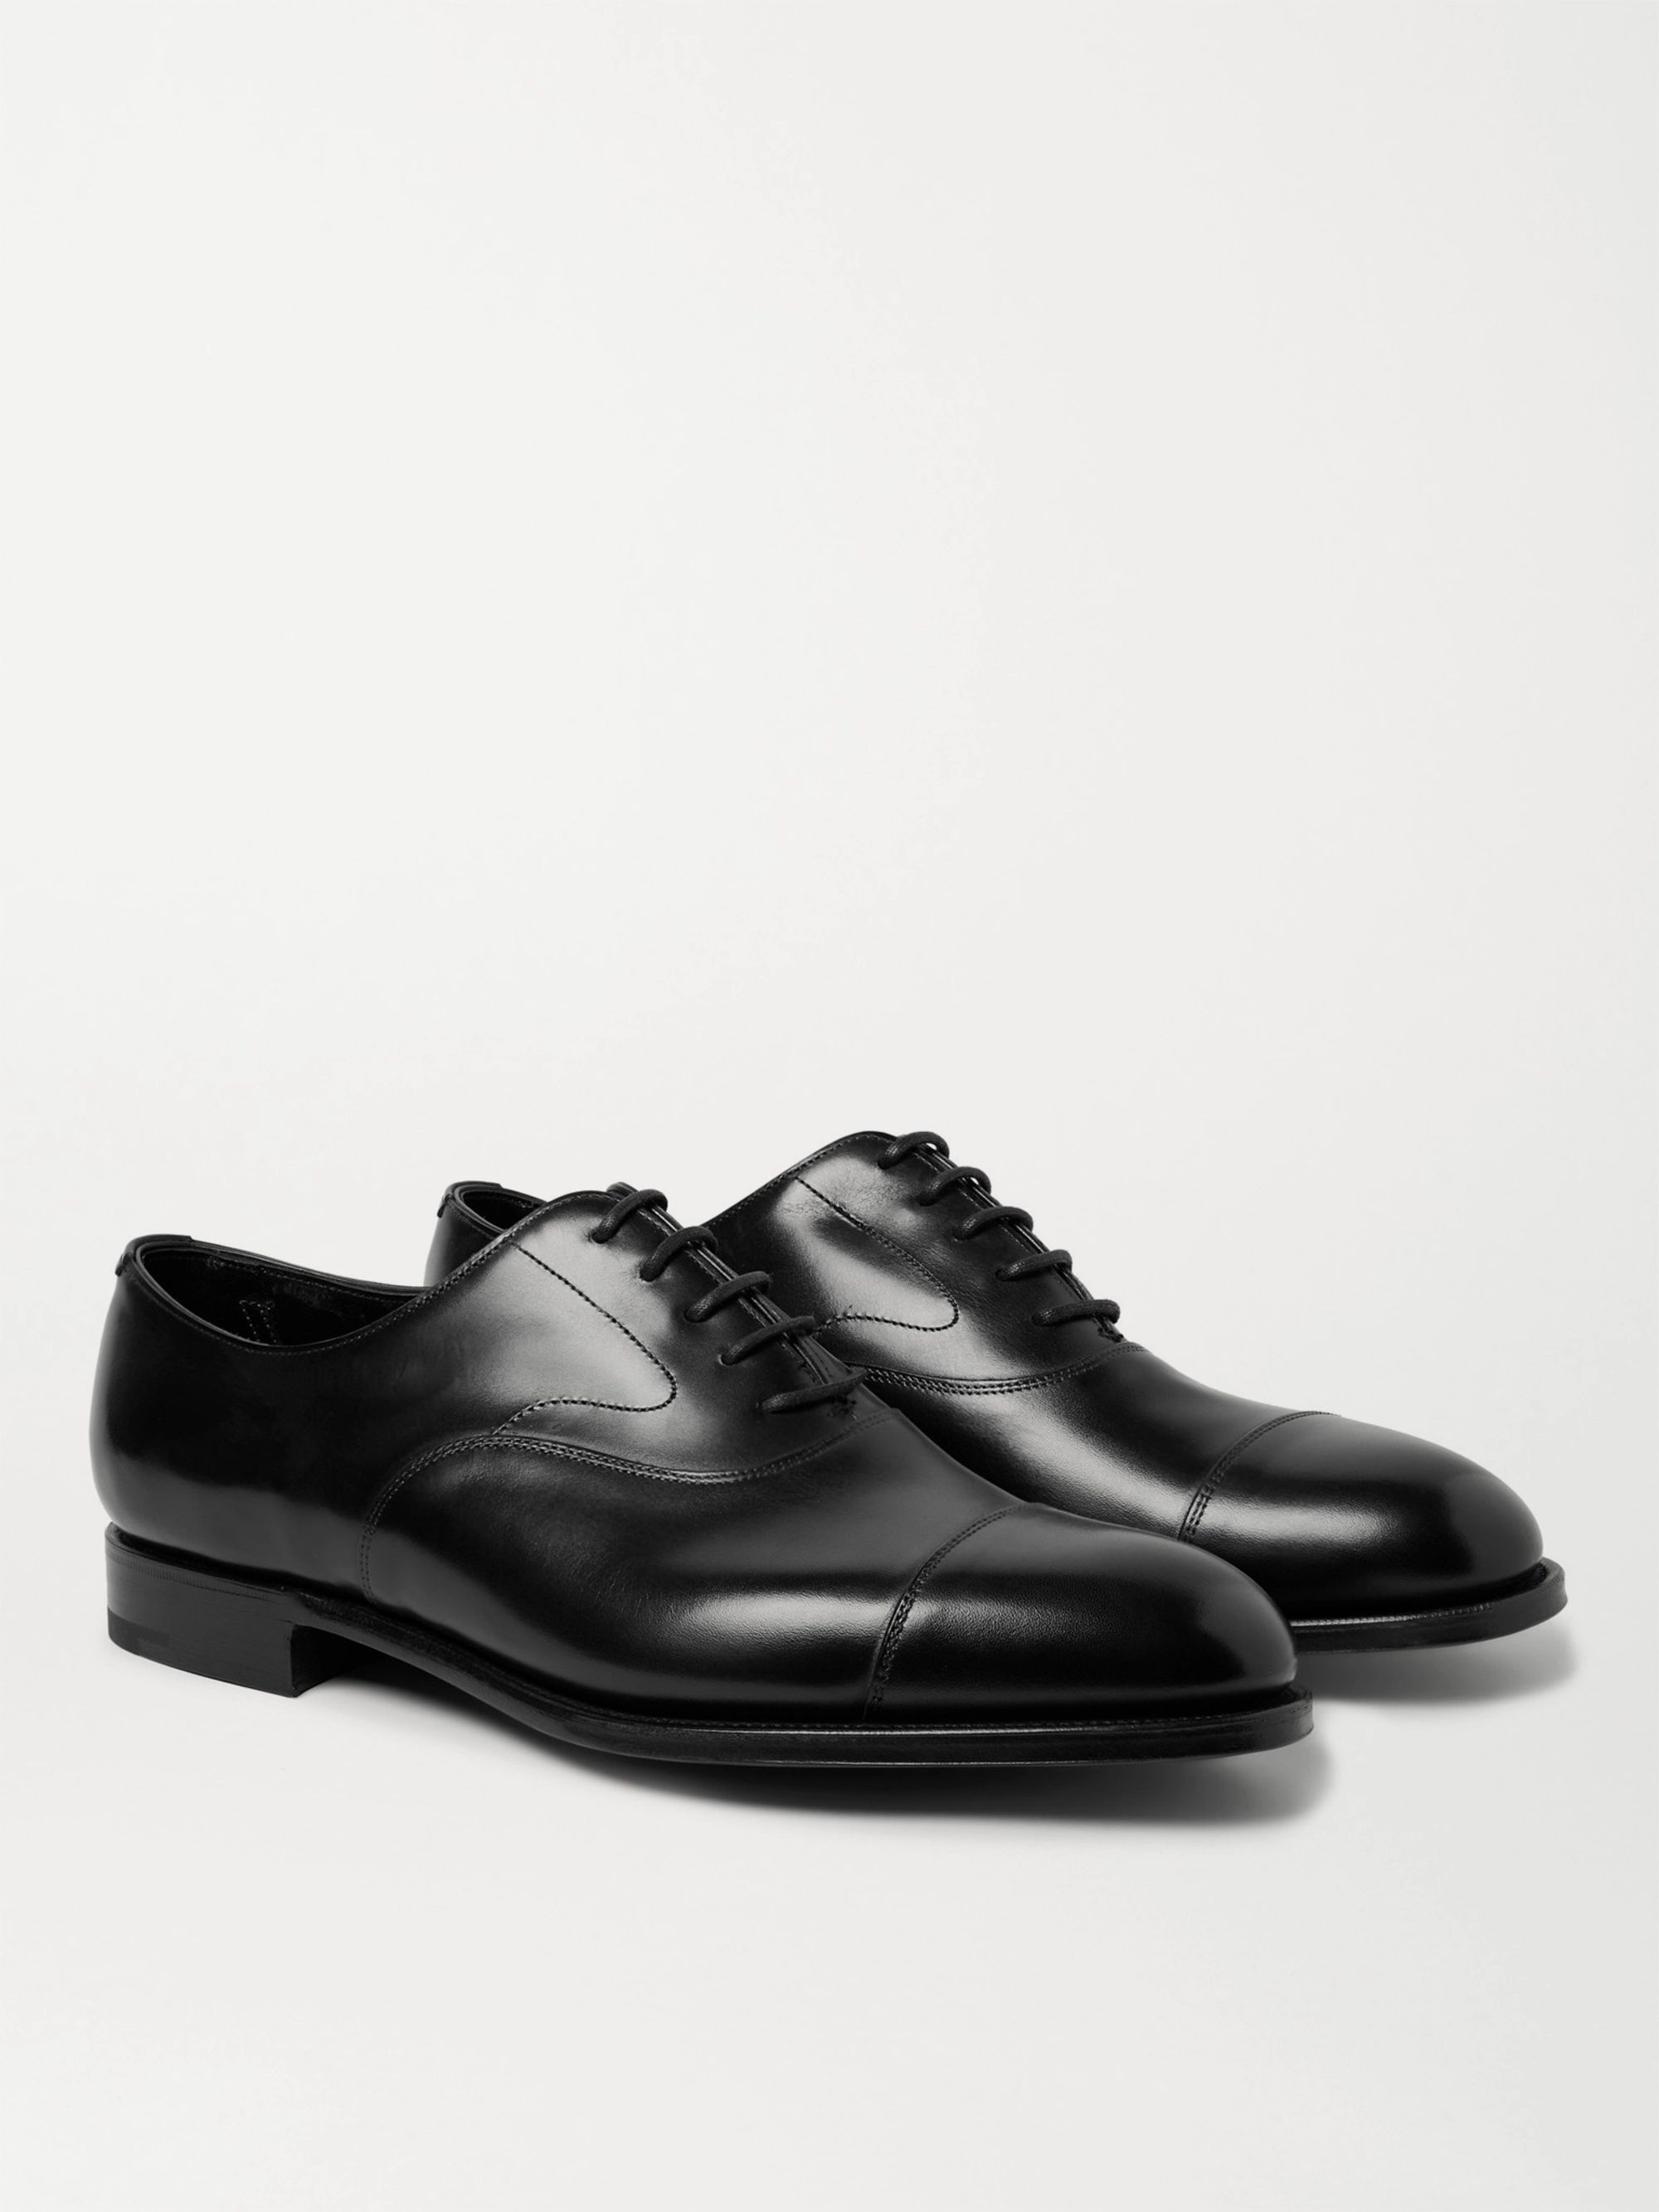 EDWARD GREEN Chelsea Burnished-Leather Oxford Shoes